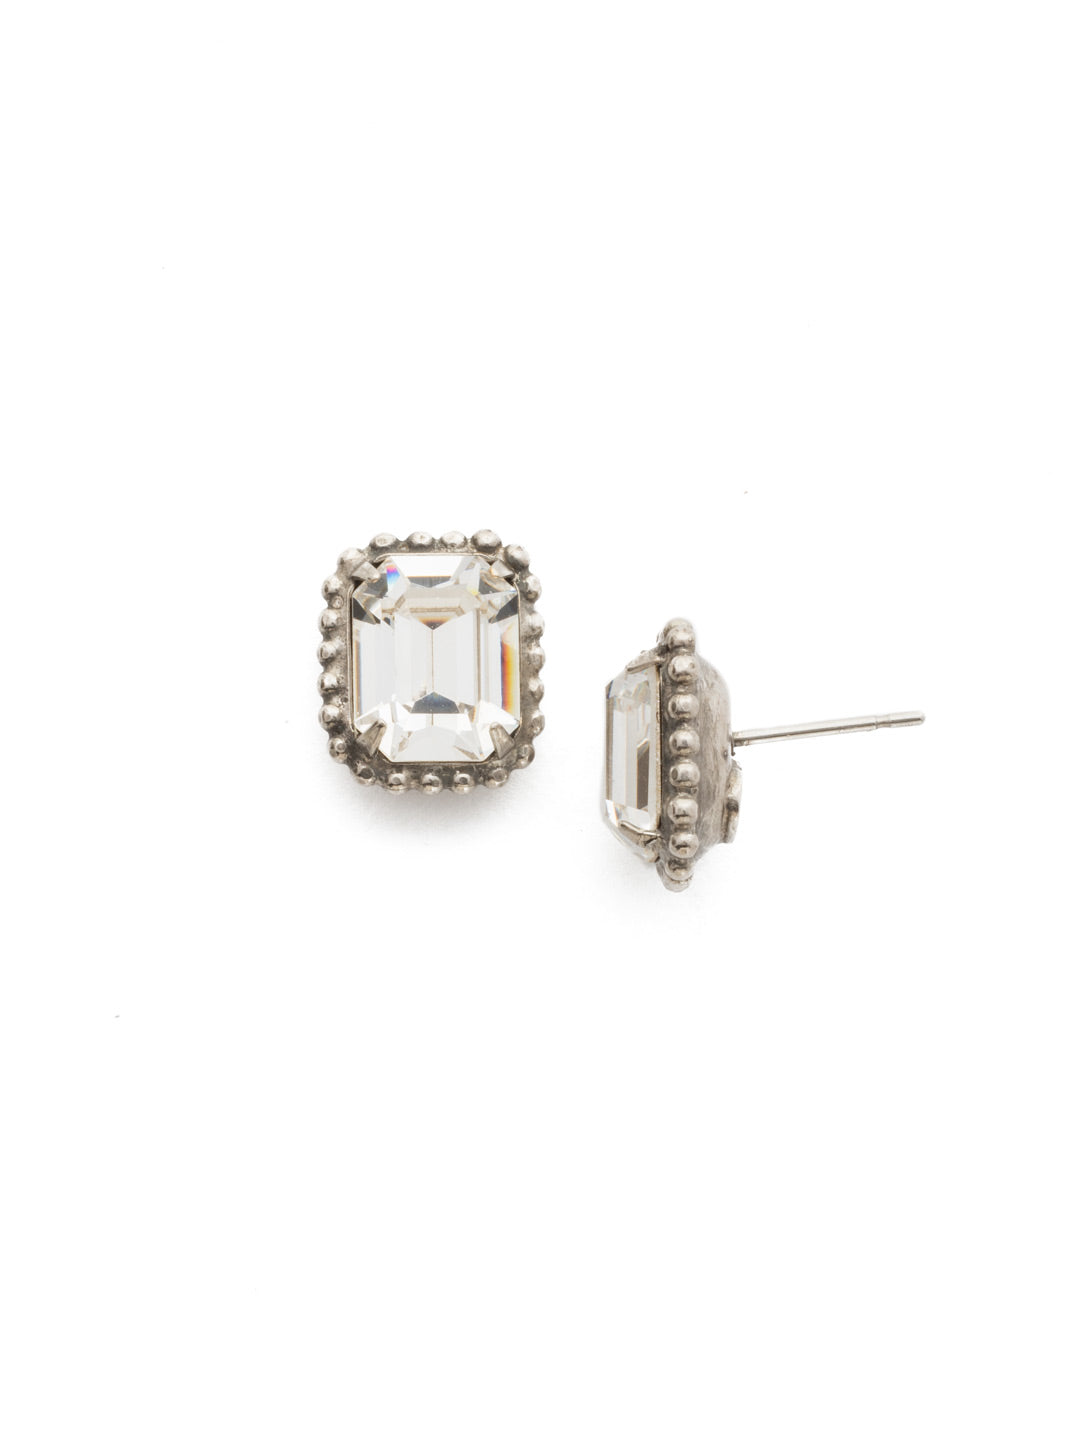 Scalloped Emerald Cut Stud Earring - EBW18ASSNB